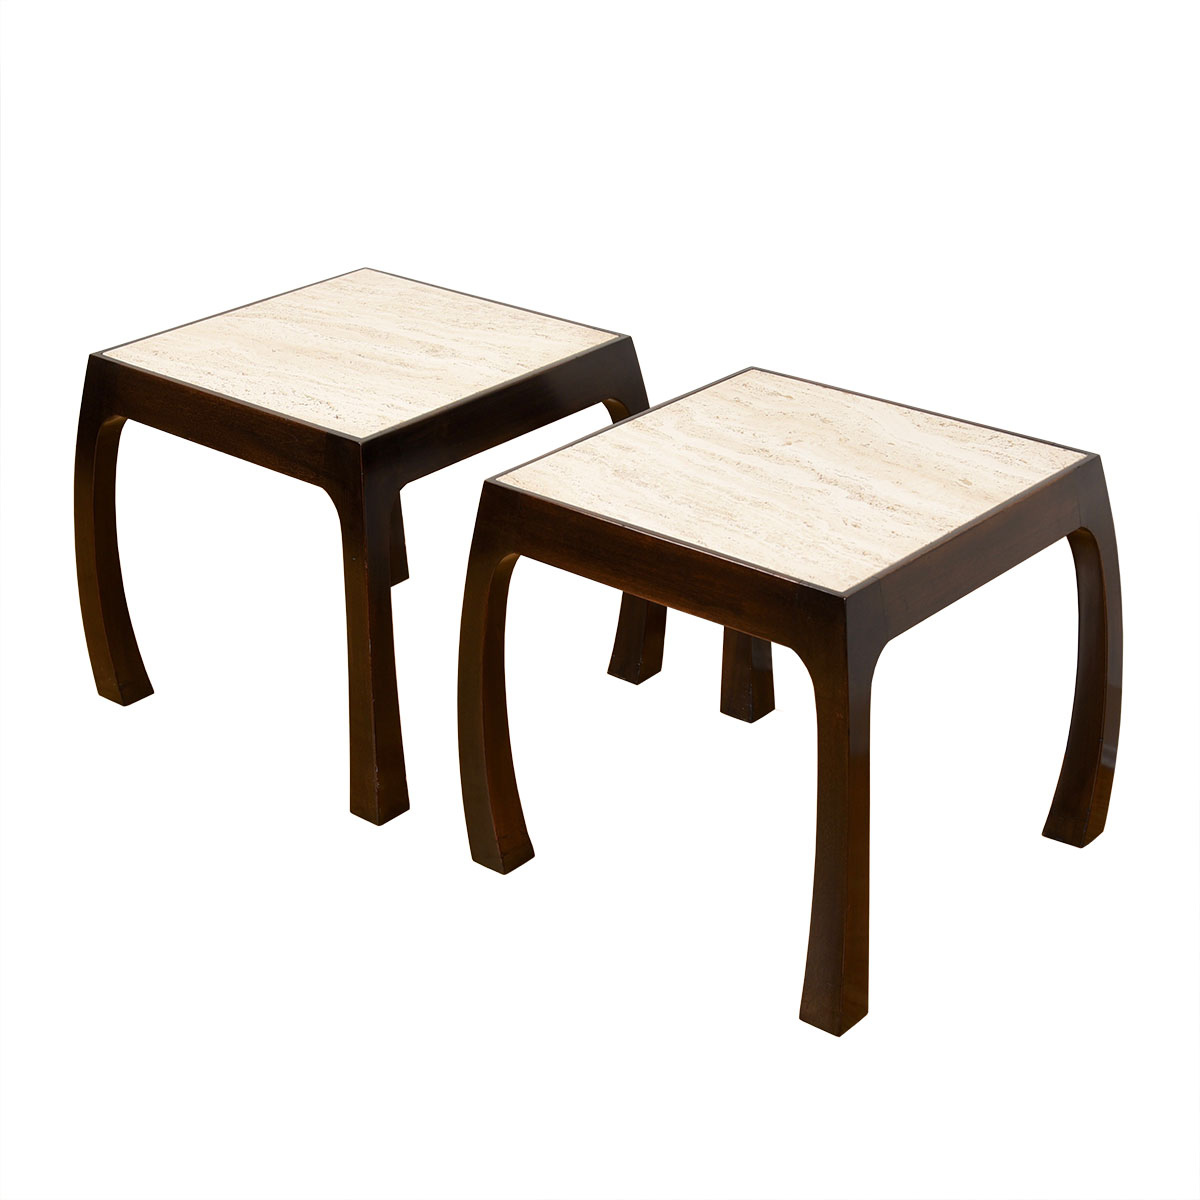 Pair Harvey Probber Italian Travertine Accent / Side / Coffee Tables